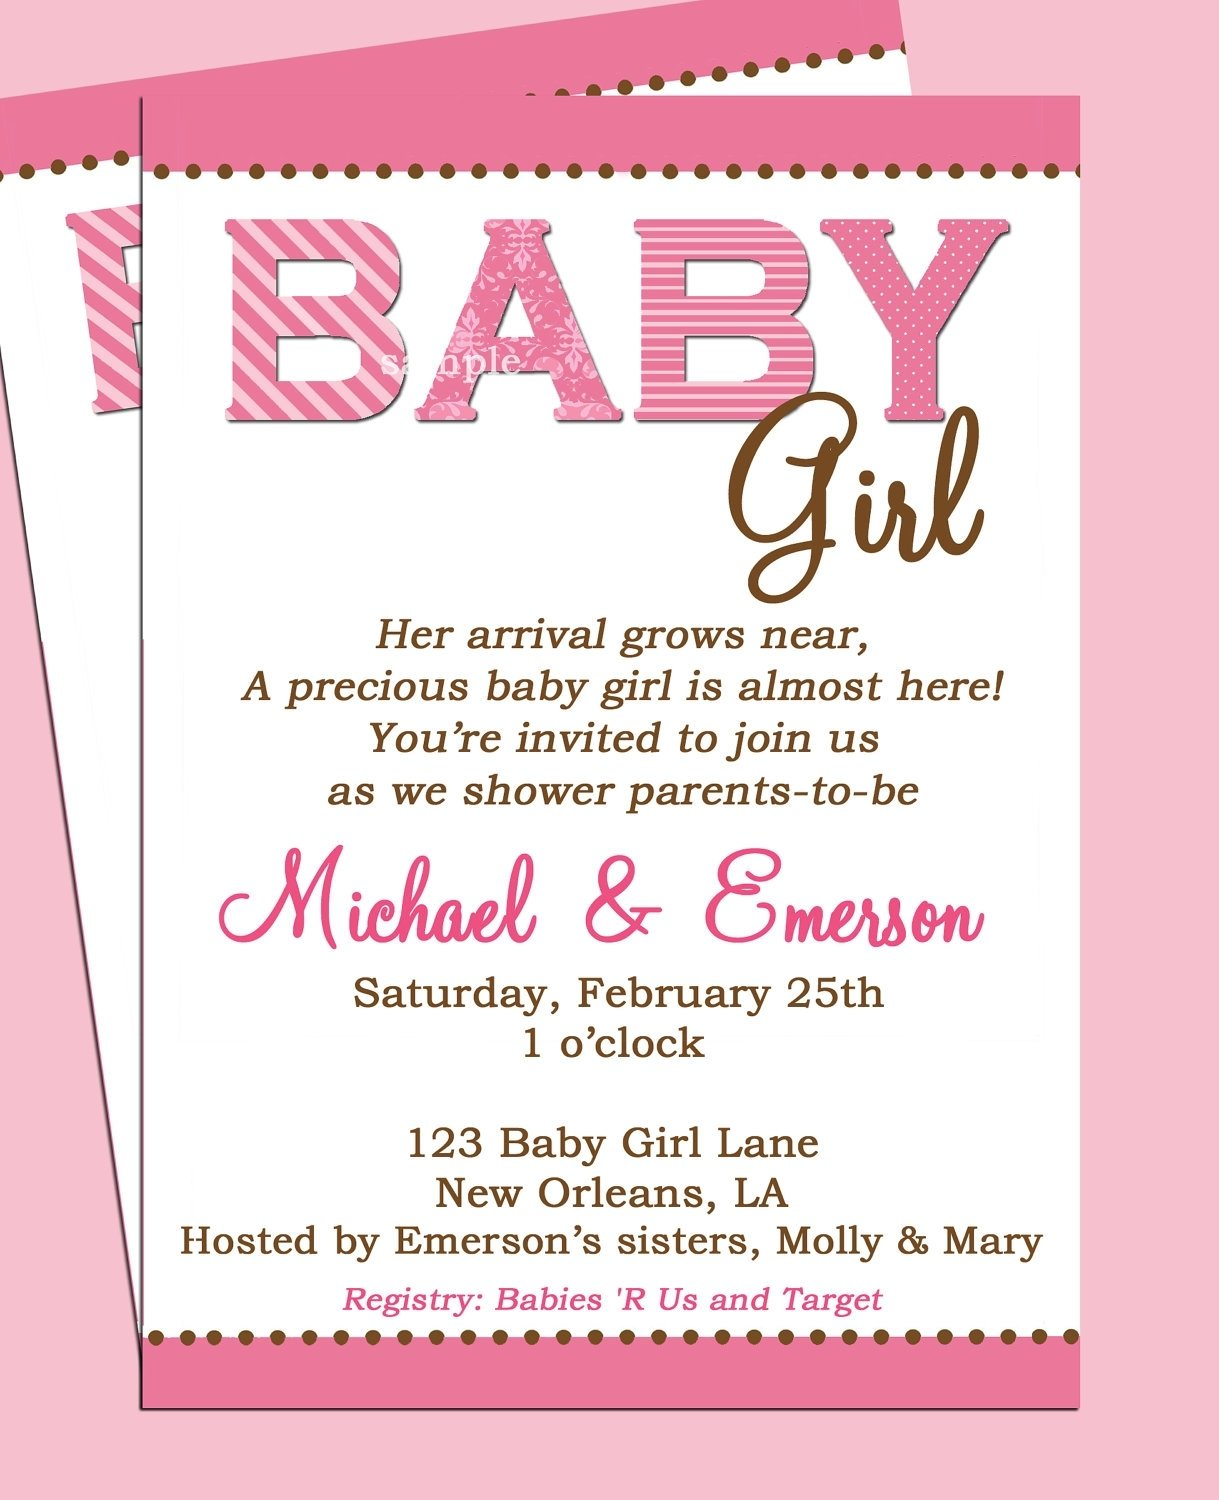 10 Most Popular Cute Baby Shower Invitation Ideas baby shower invite words coles thecolossus co 1 2020